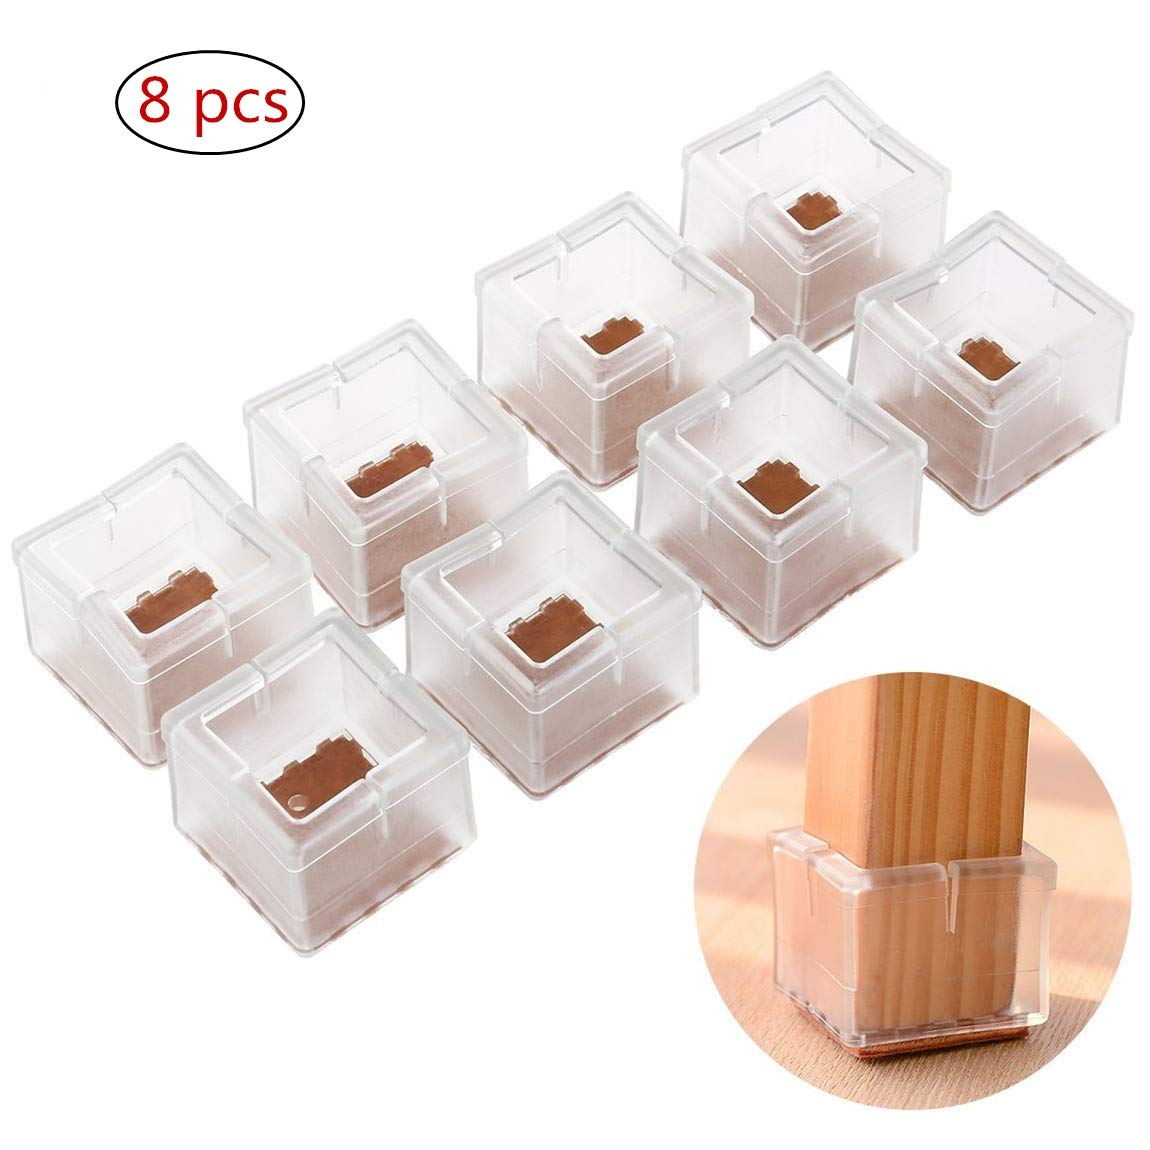 FABSELLER Transparent Square Chair Table Leg Caps, Rubber Feet Cups Pads  Table Covers Wood Floor Silicone Protectors Furniture Feet Covers (6Pcs)